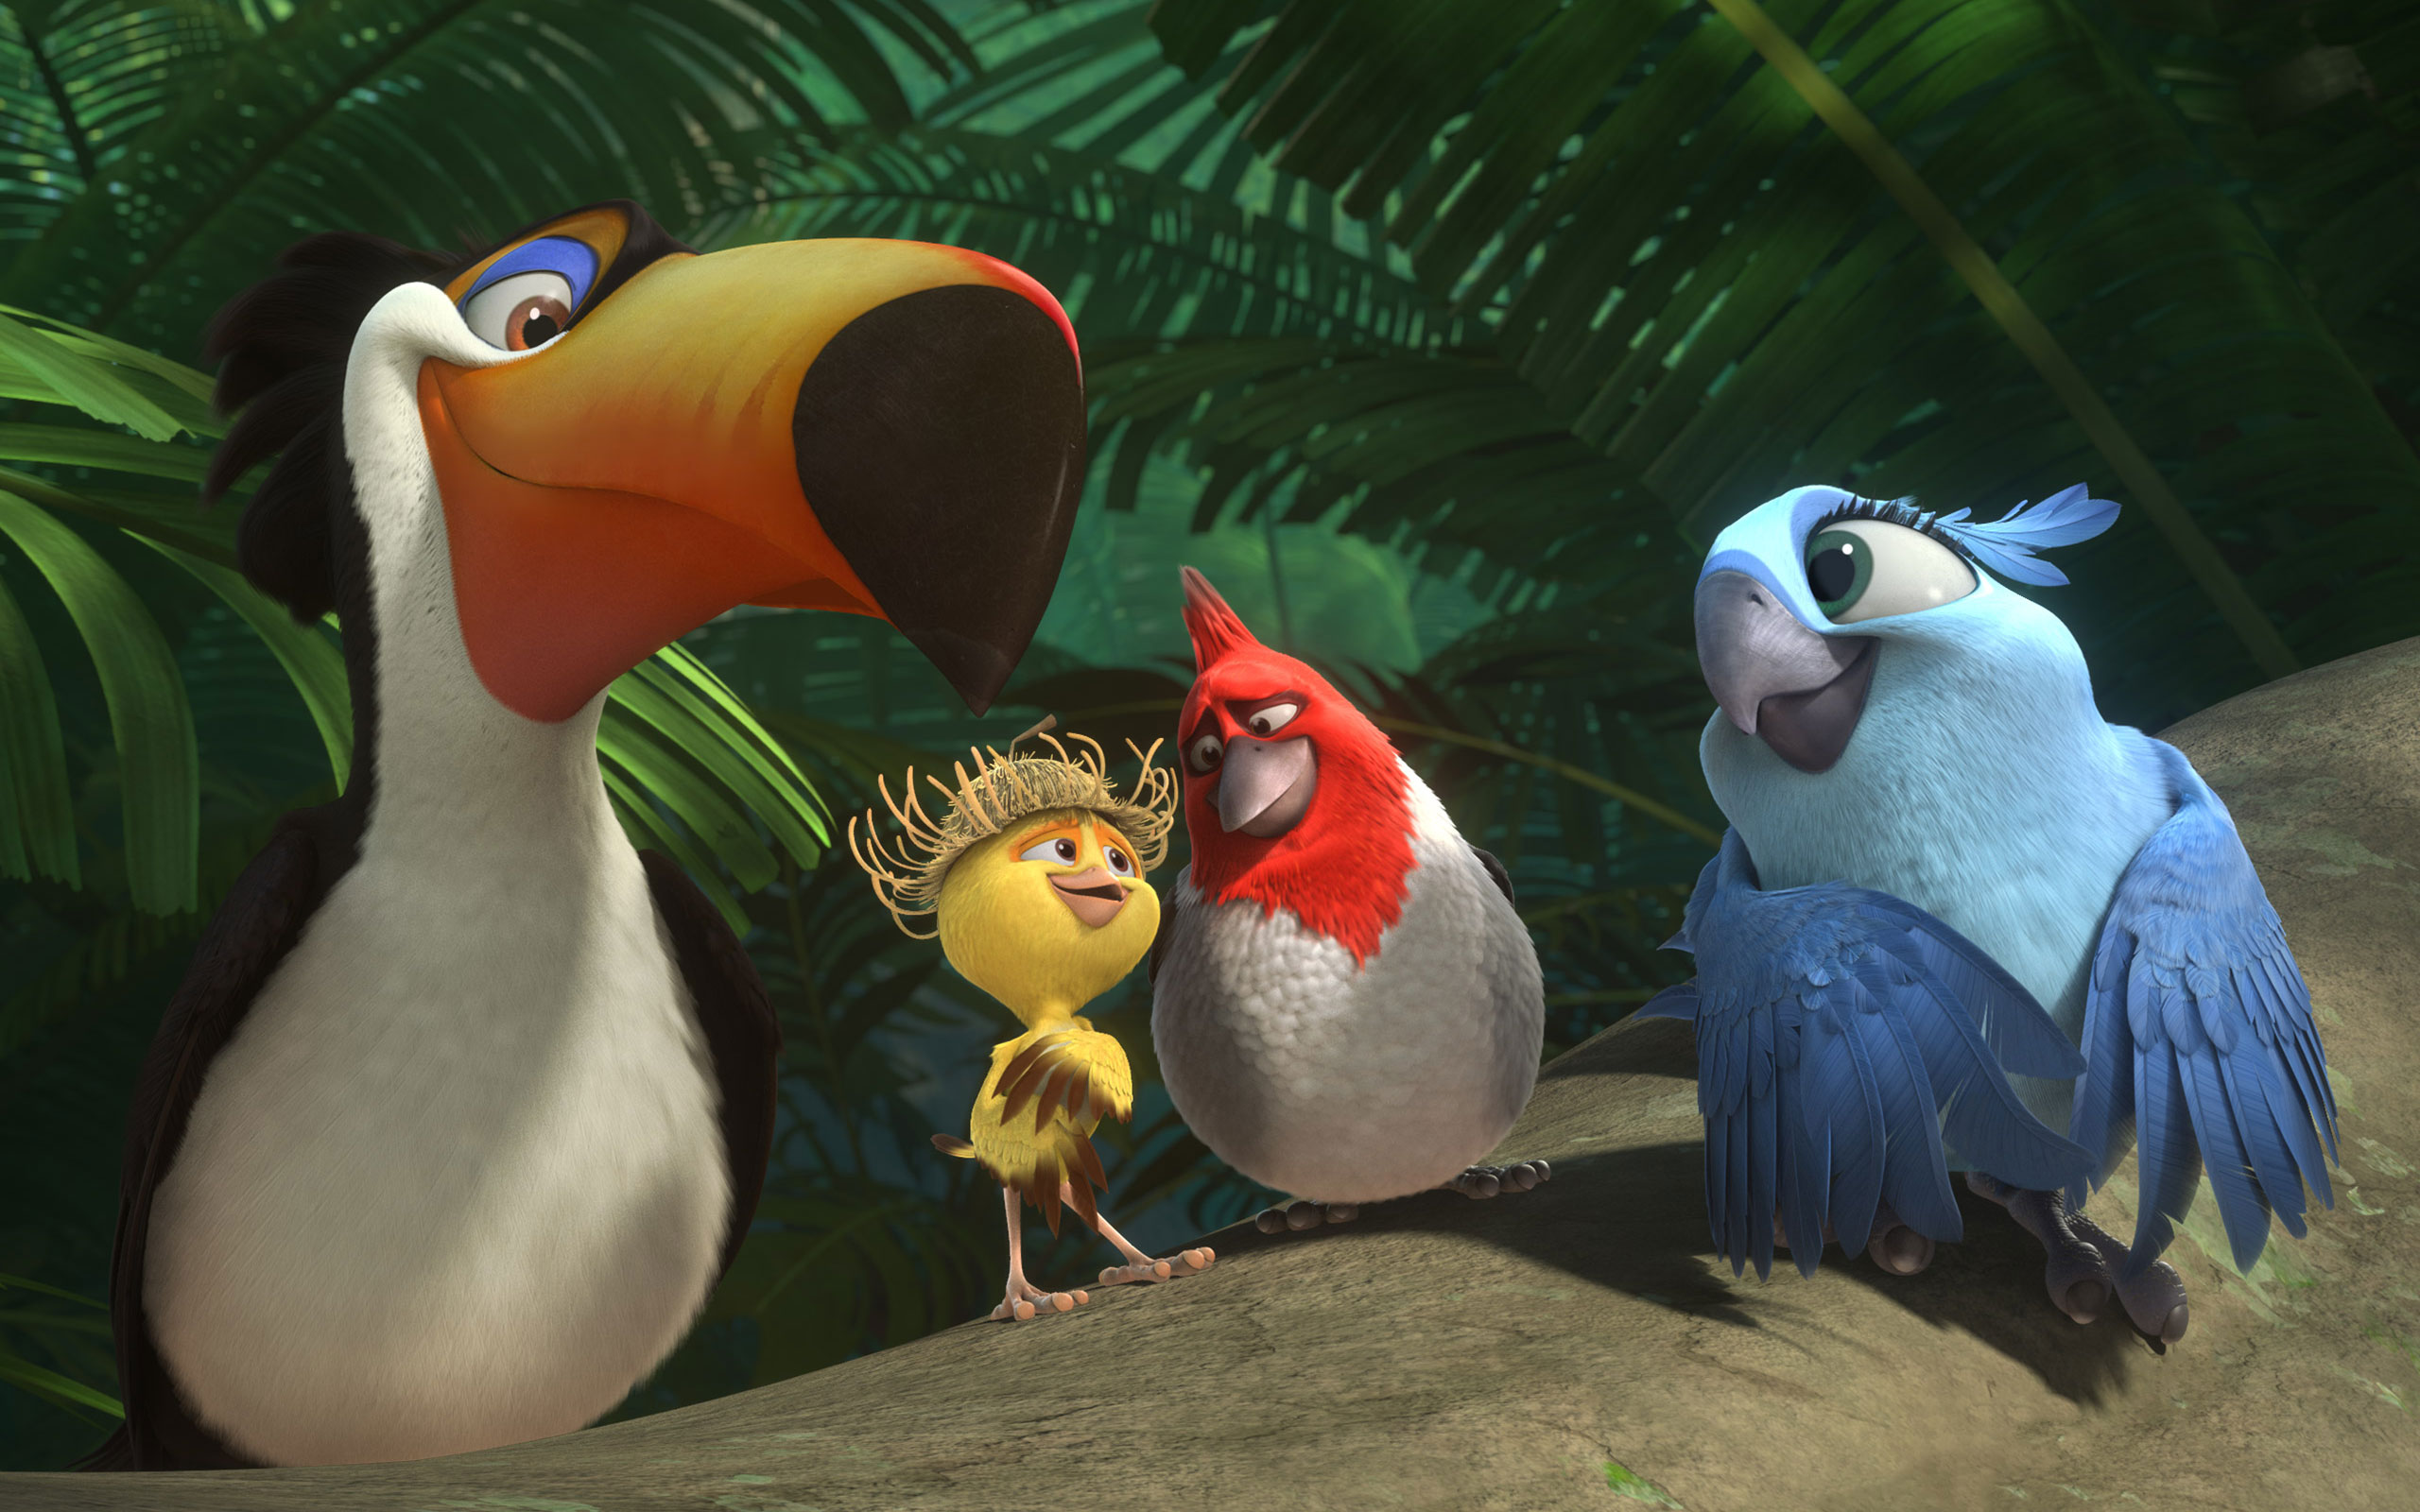 Rafael Nico Pedro Carla Wallpaper of Rio 21 Download film Rio 2 + Subtitle Indonesia